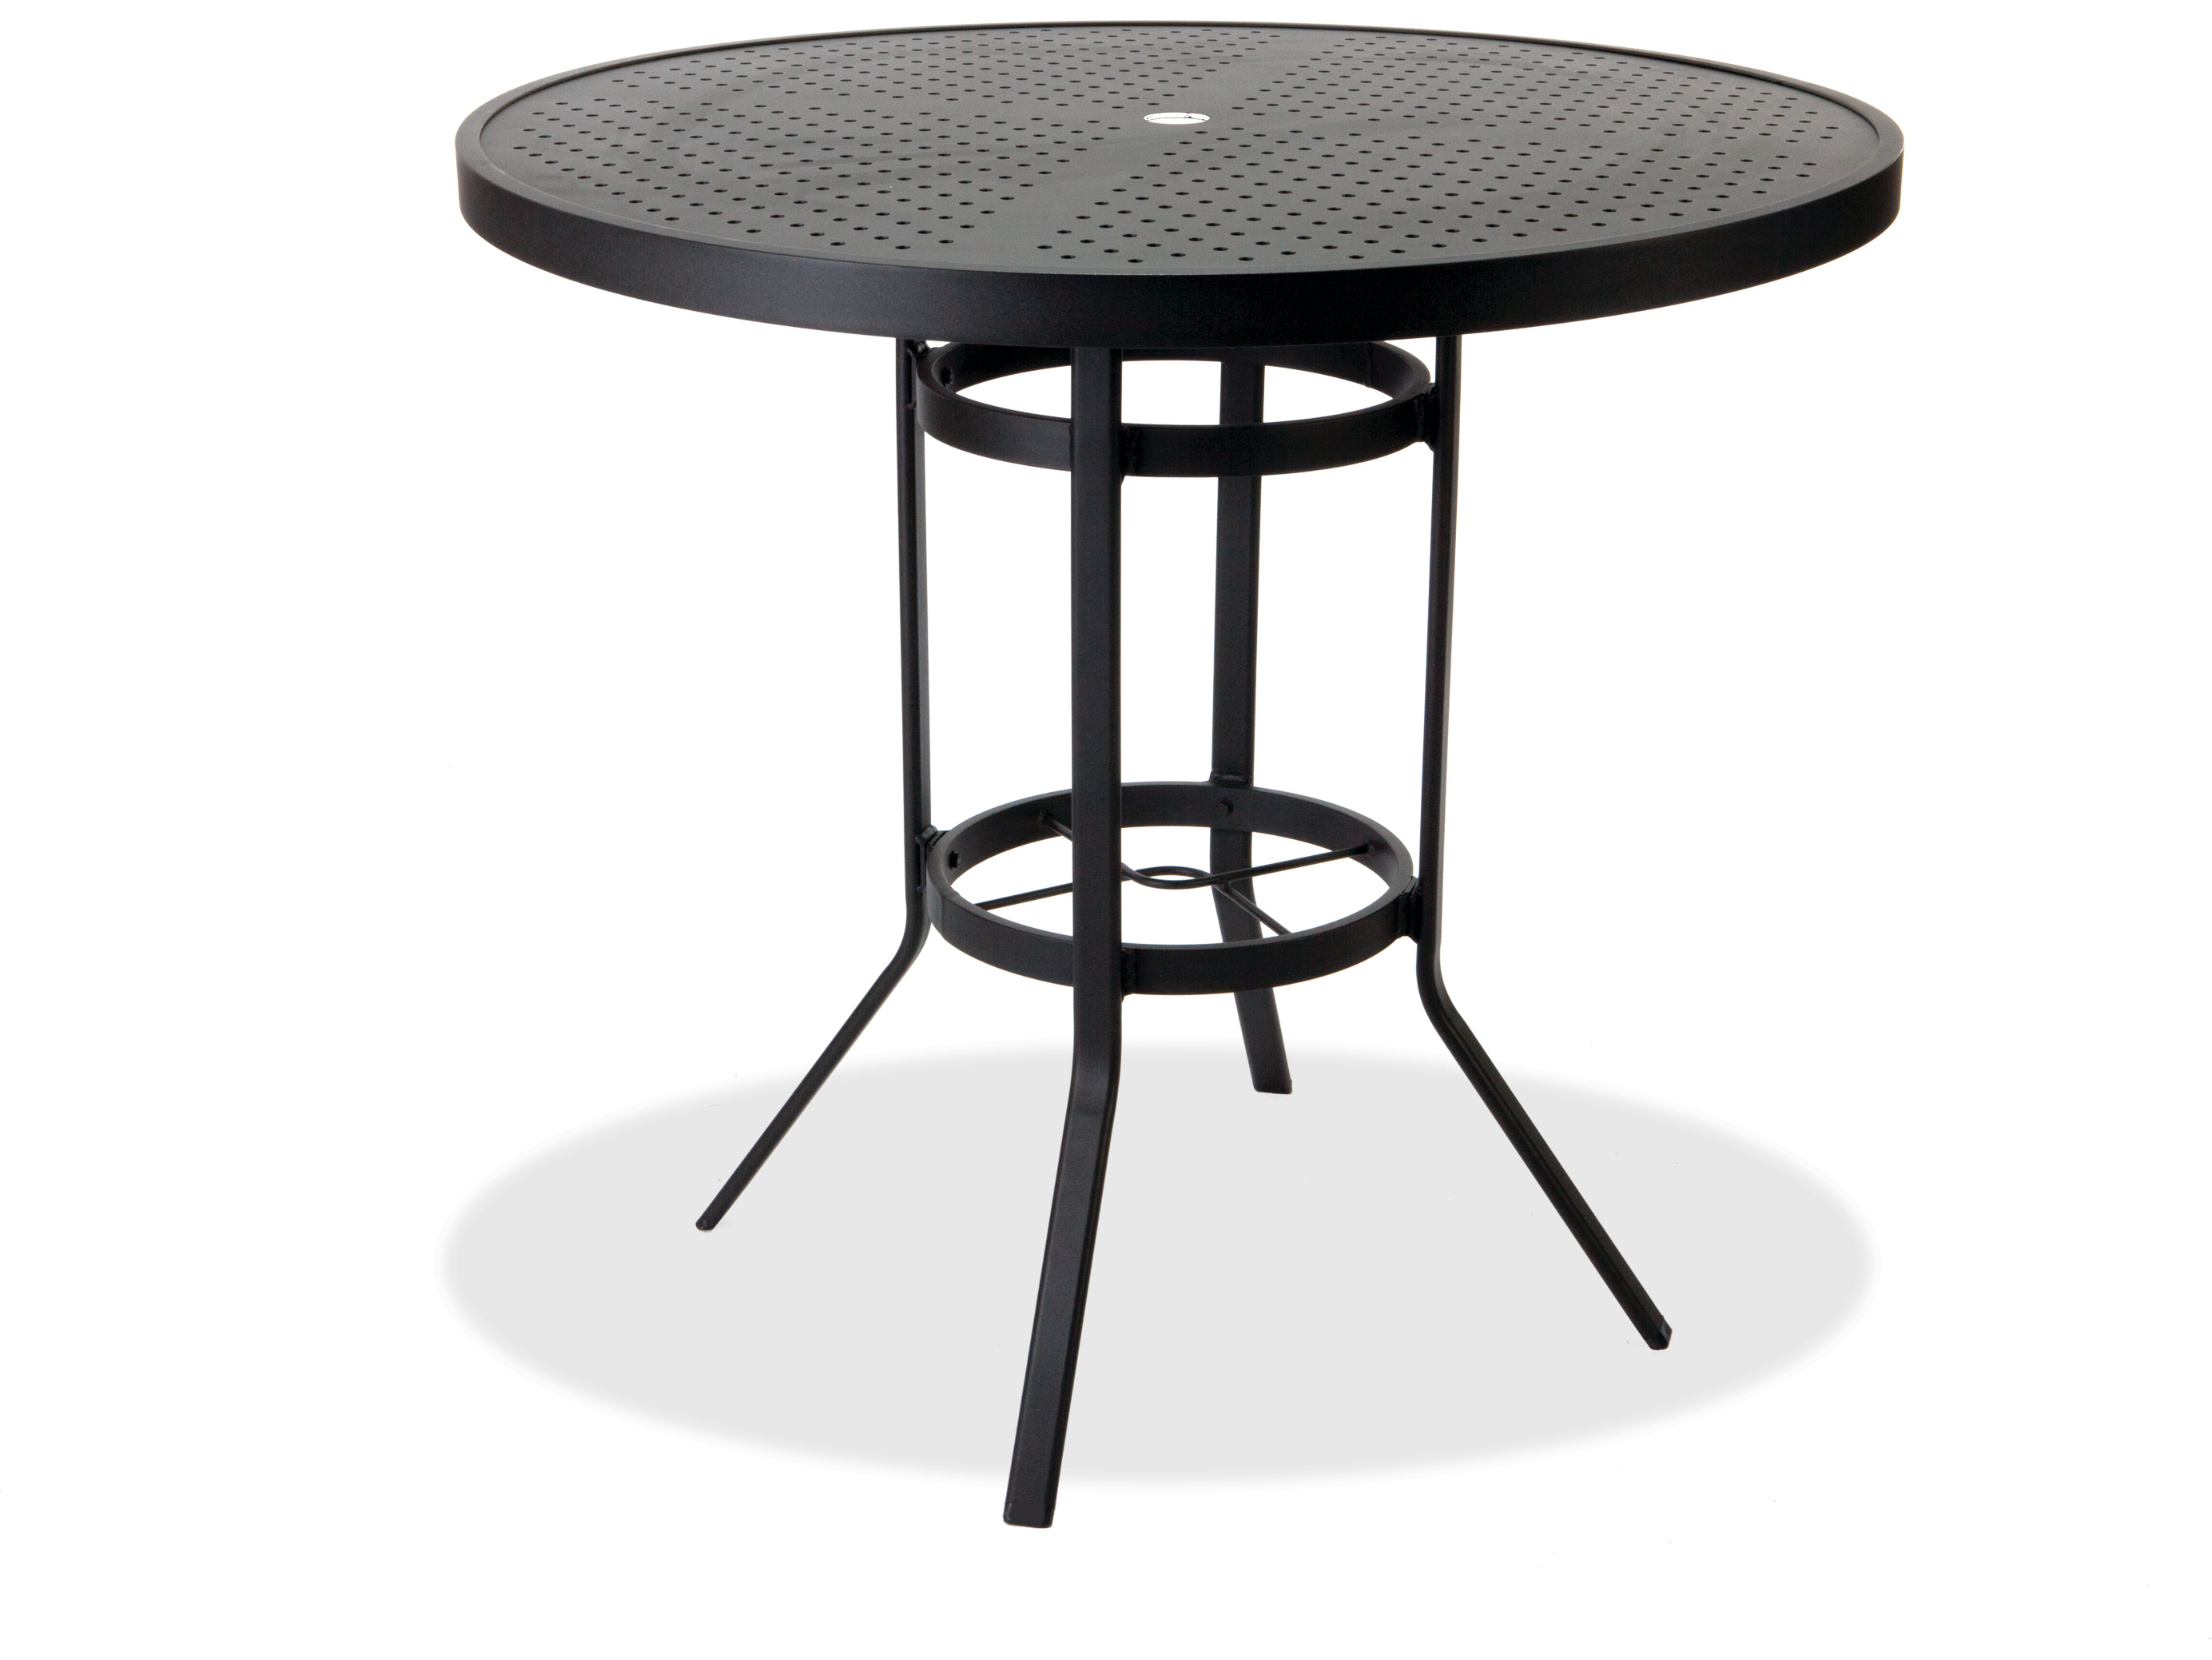 winston stamped aluminum 42 39 39 round metal bar table with umbrella hole m8142hstu. Black Bedroom Furniture Sets. Home Design Ideas